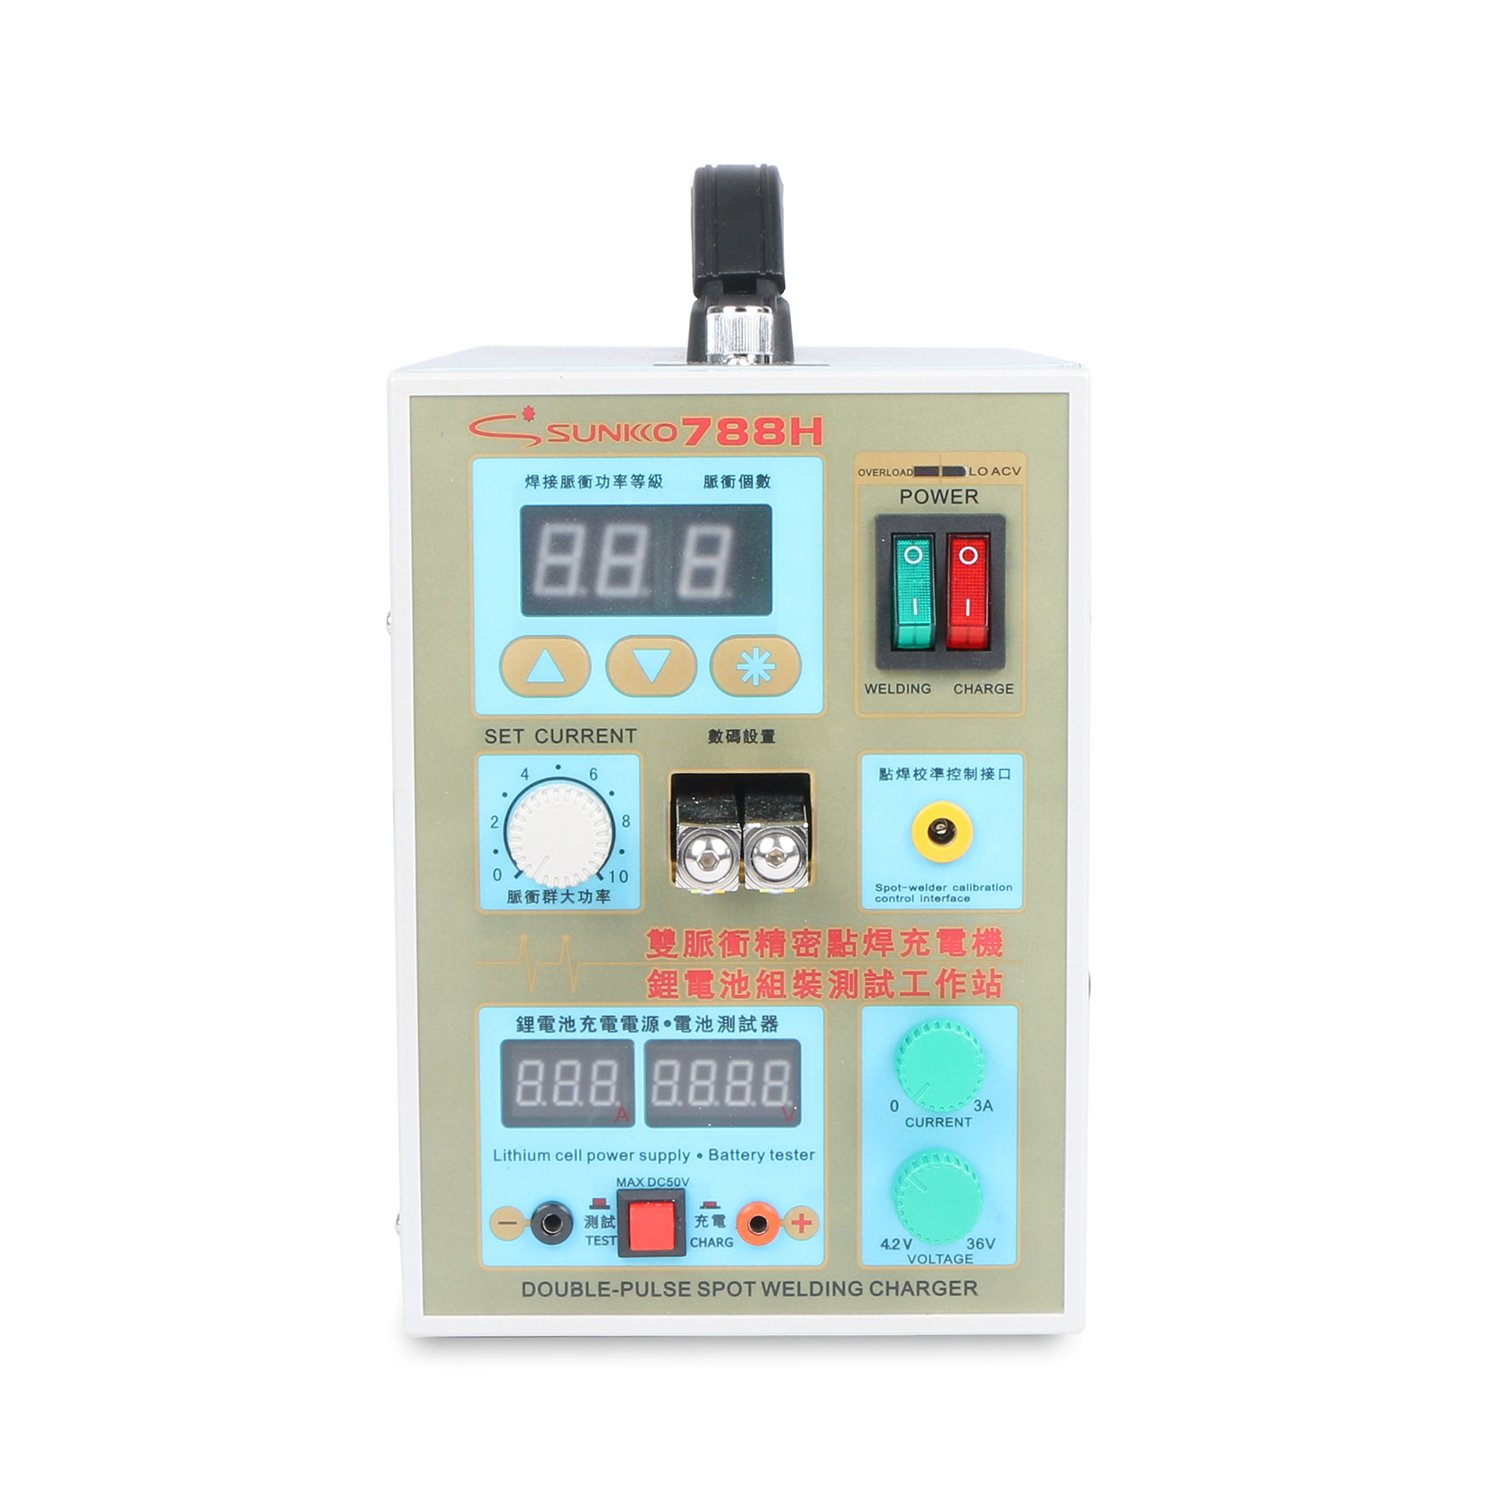 SUNKKO Pulse Spot Welder 788H 18650 battery Welding Machine with LED Battery Testing and Charging Function by SUNKKO